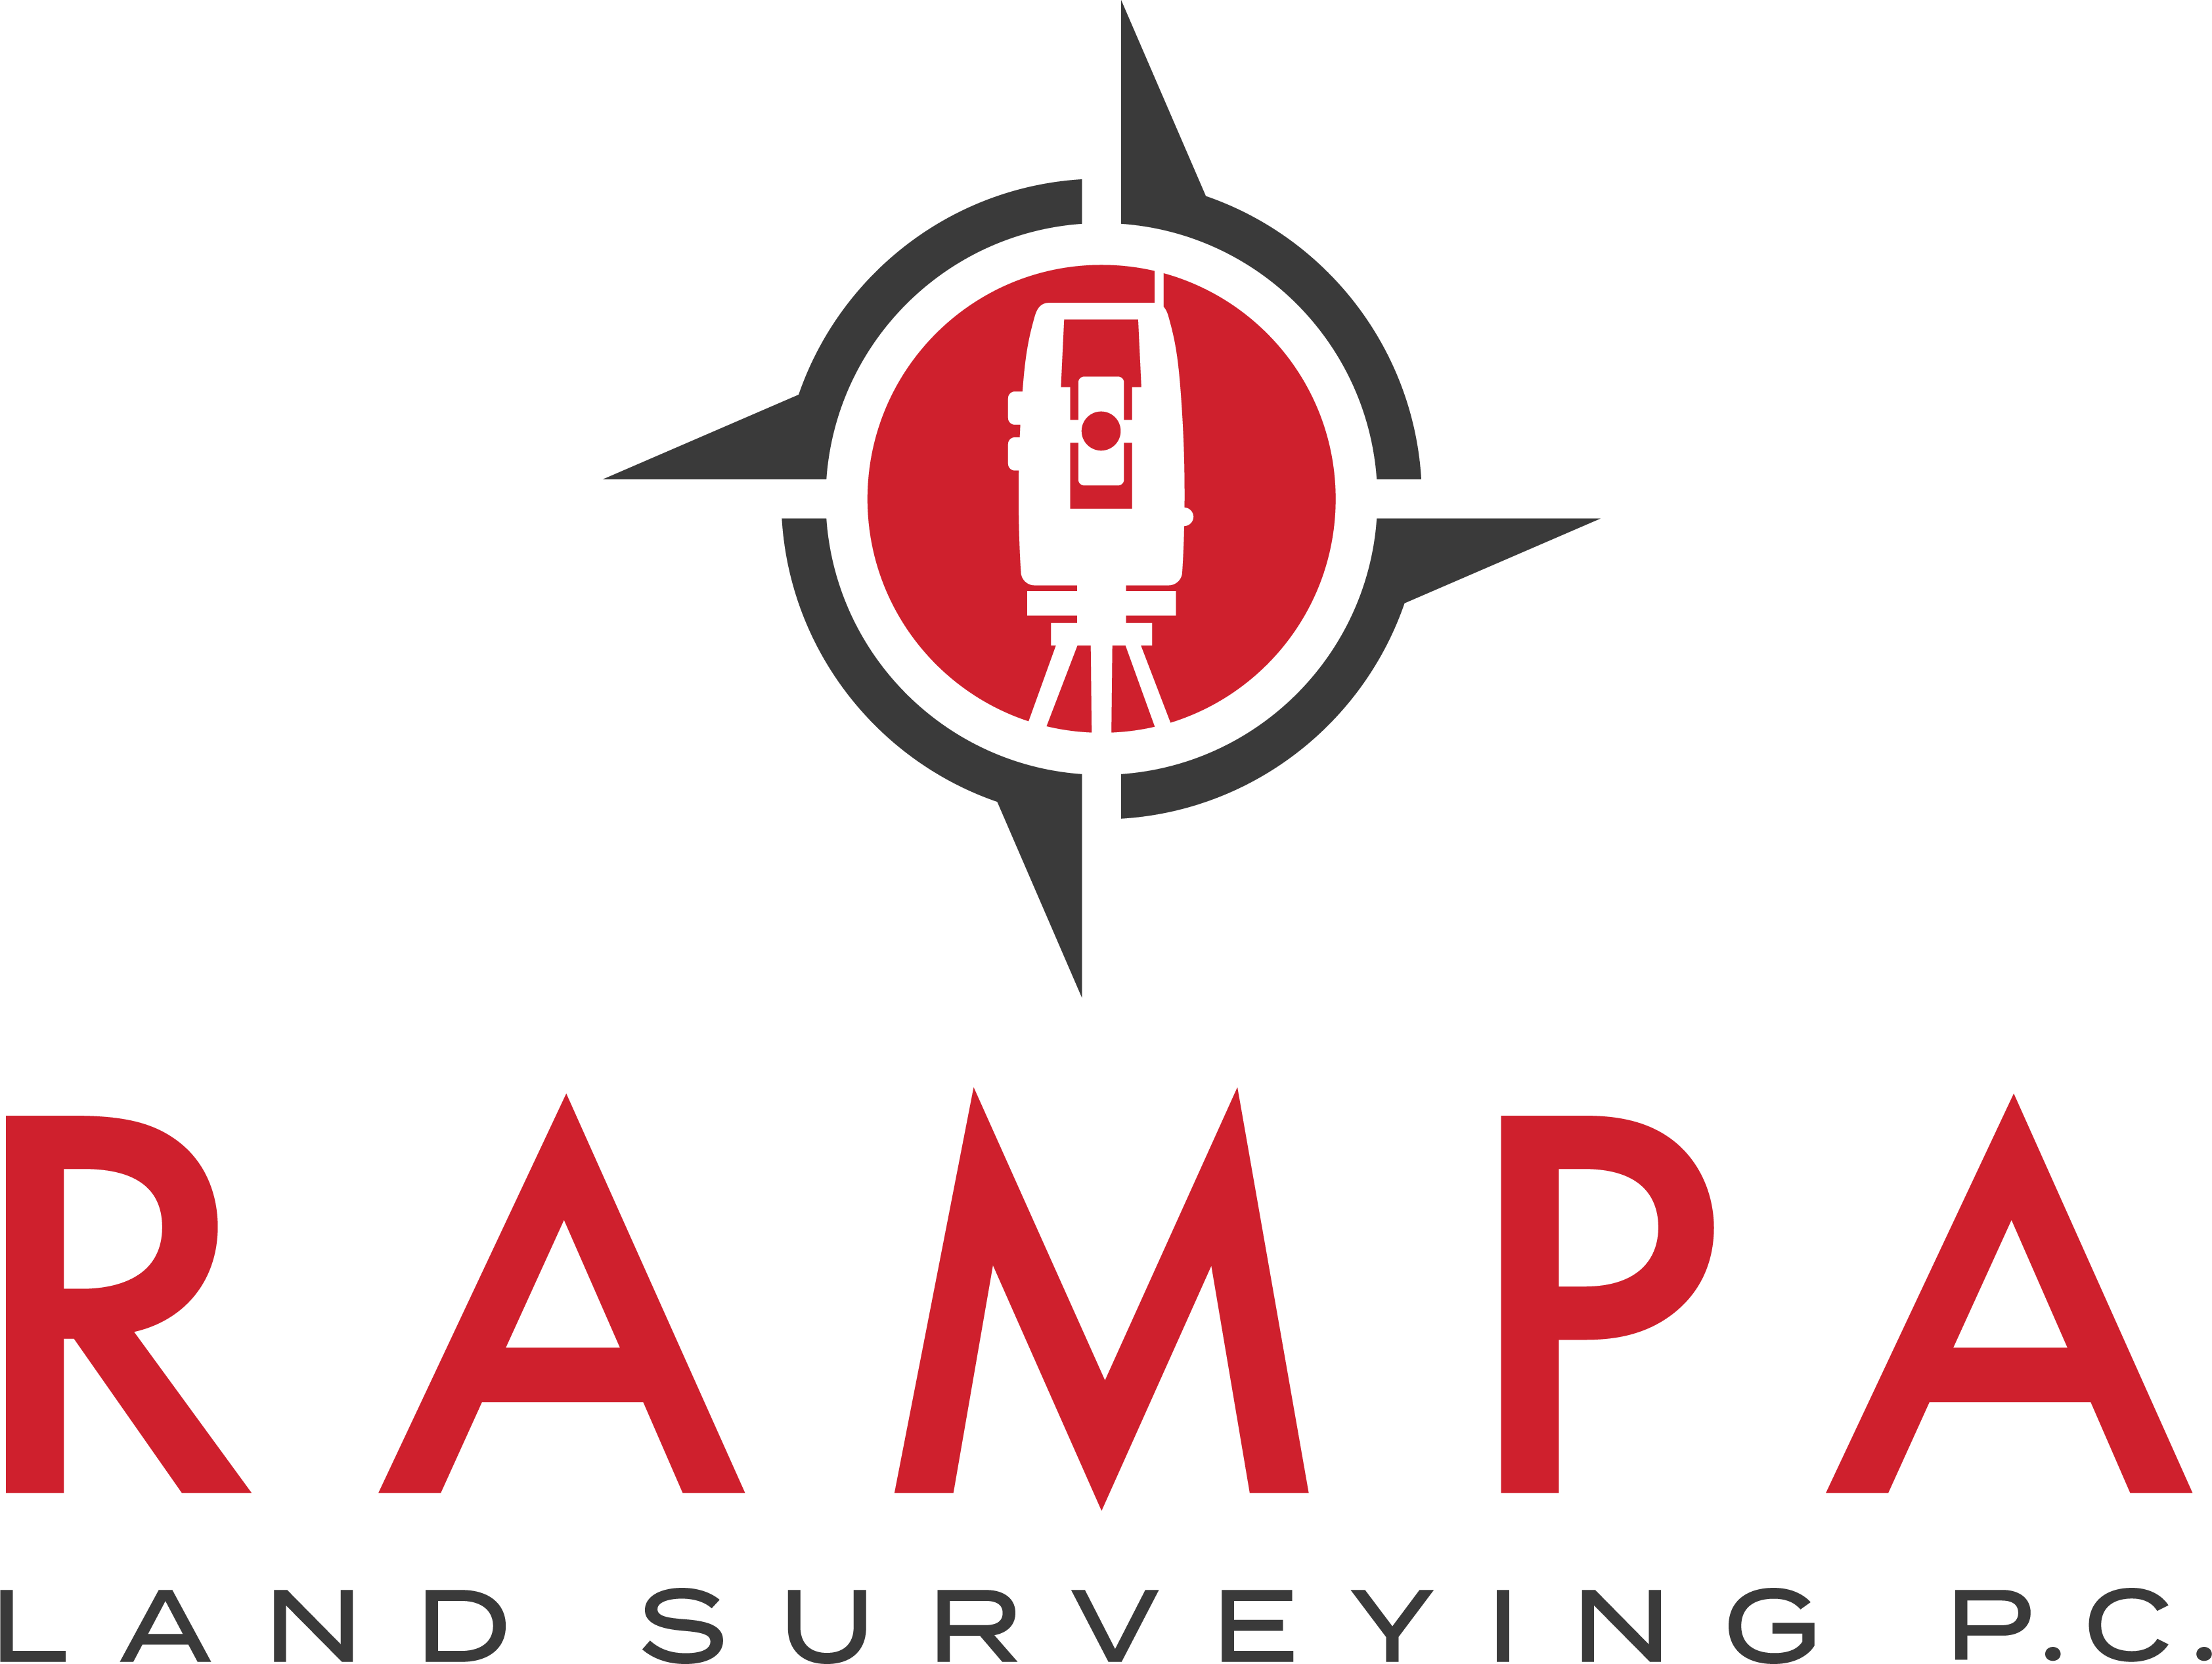 RAMPA LAND SURVEYING P.C.